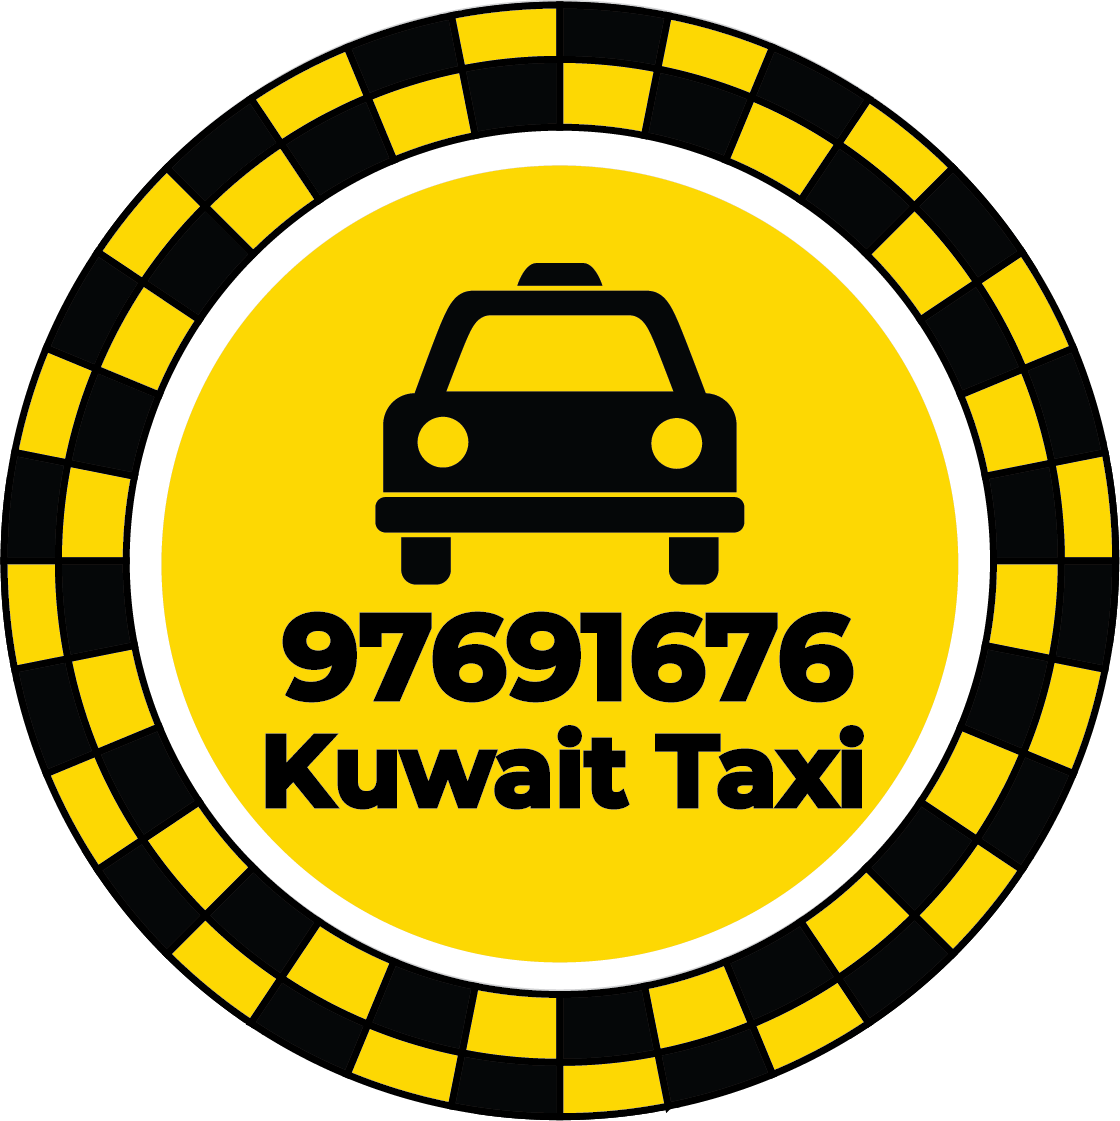 Taxi Service Near Me in Kuwait